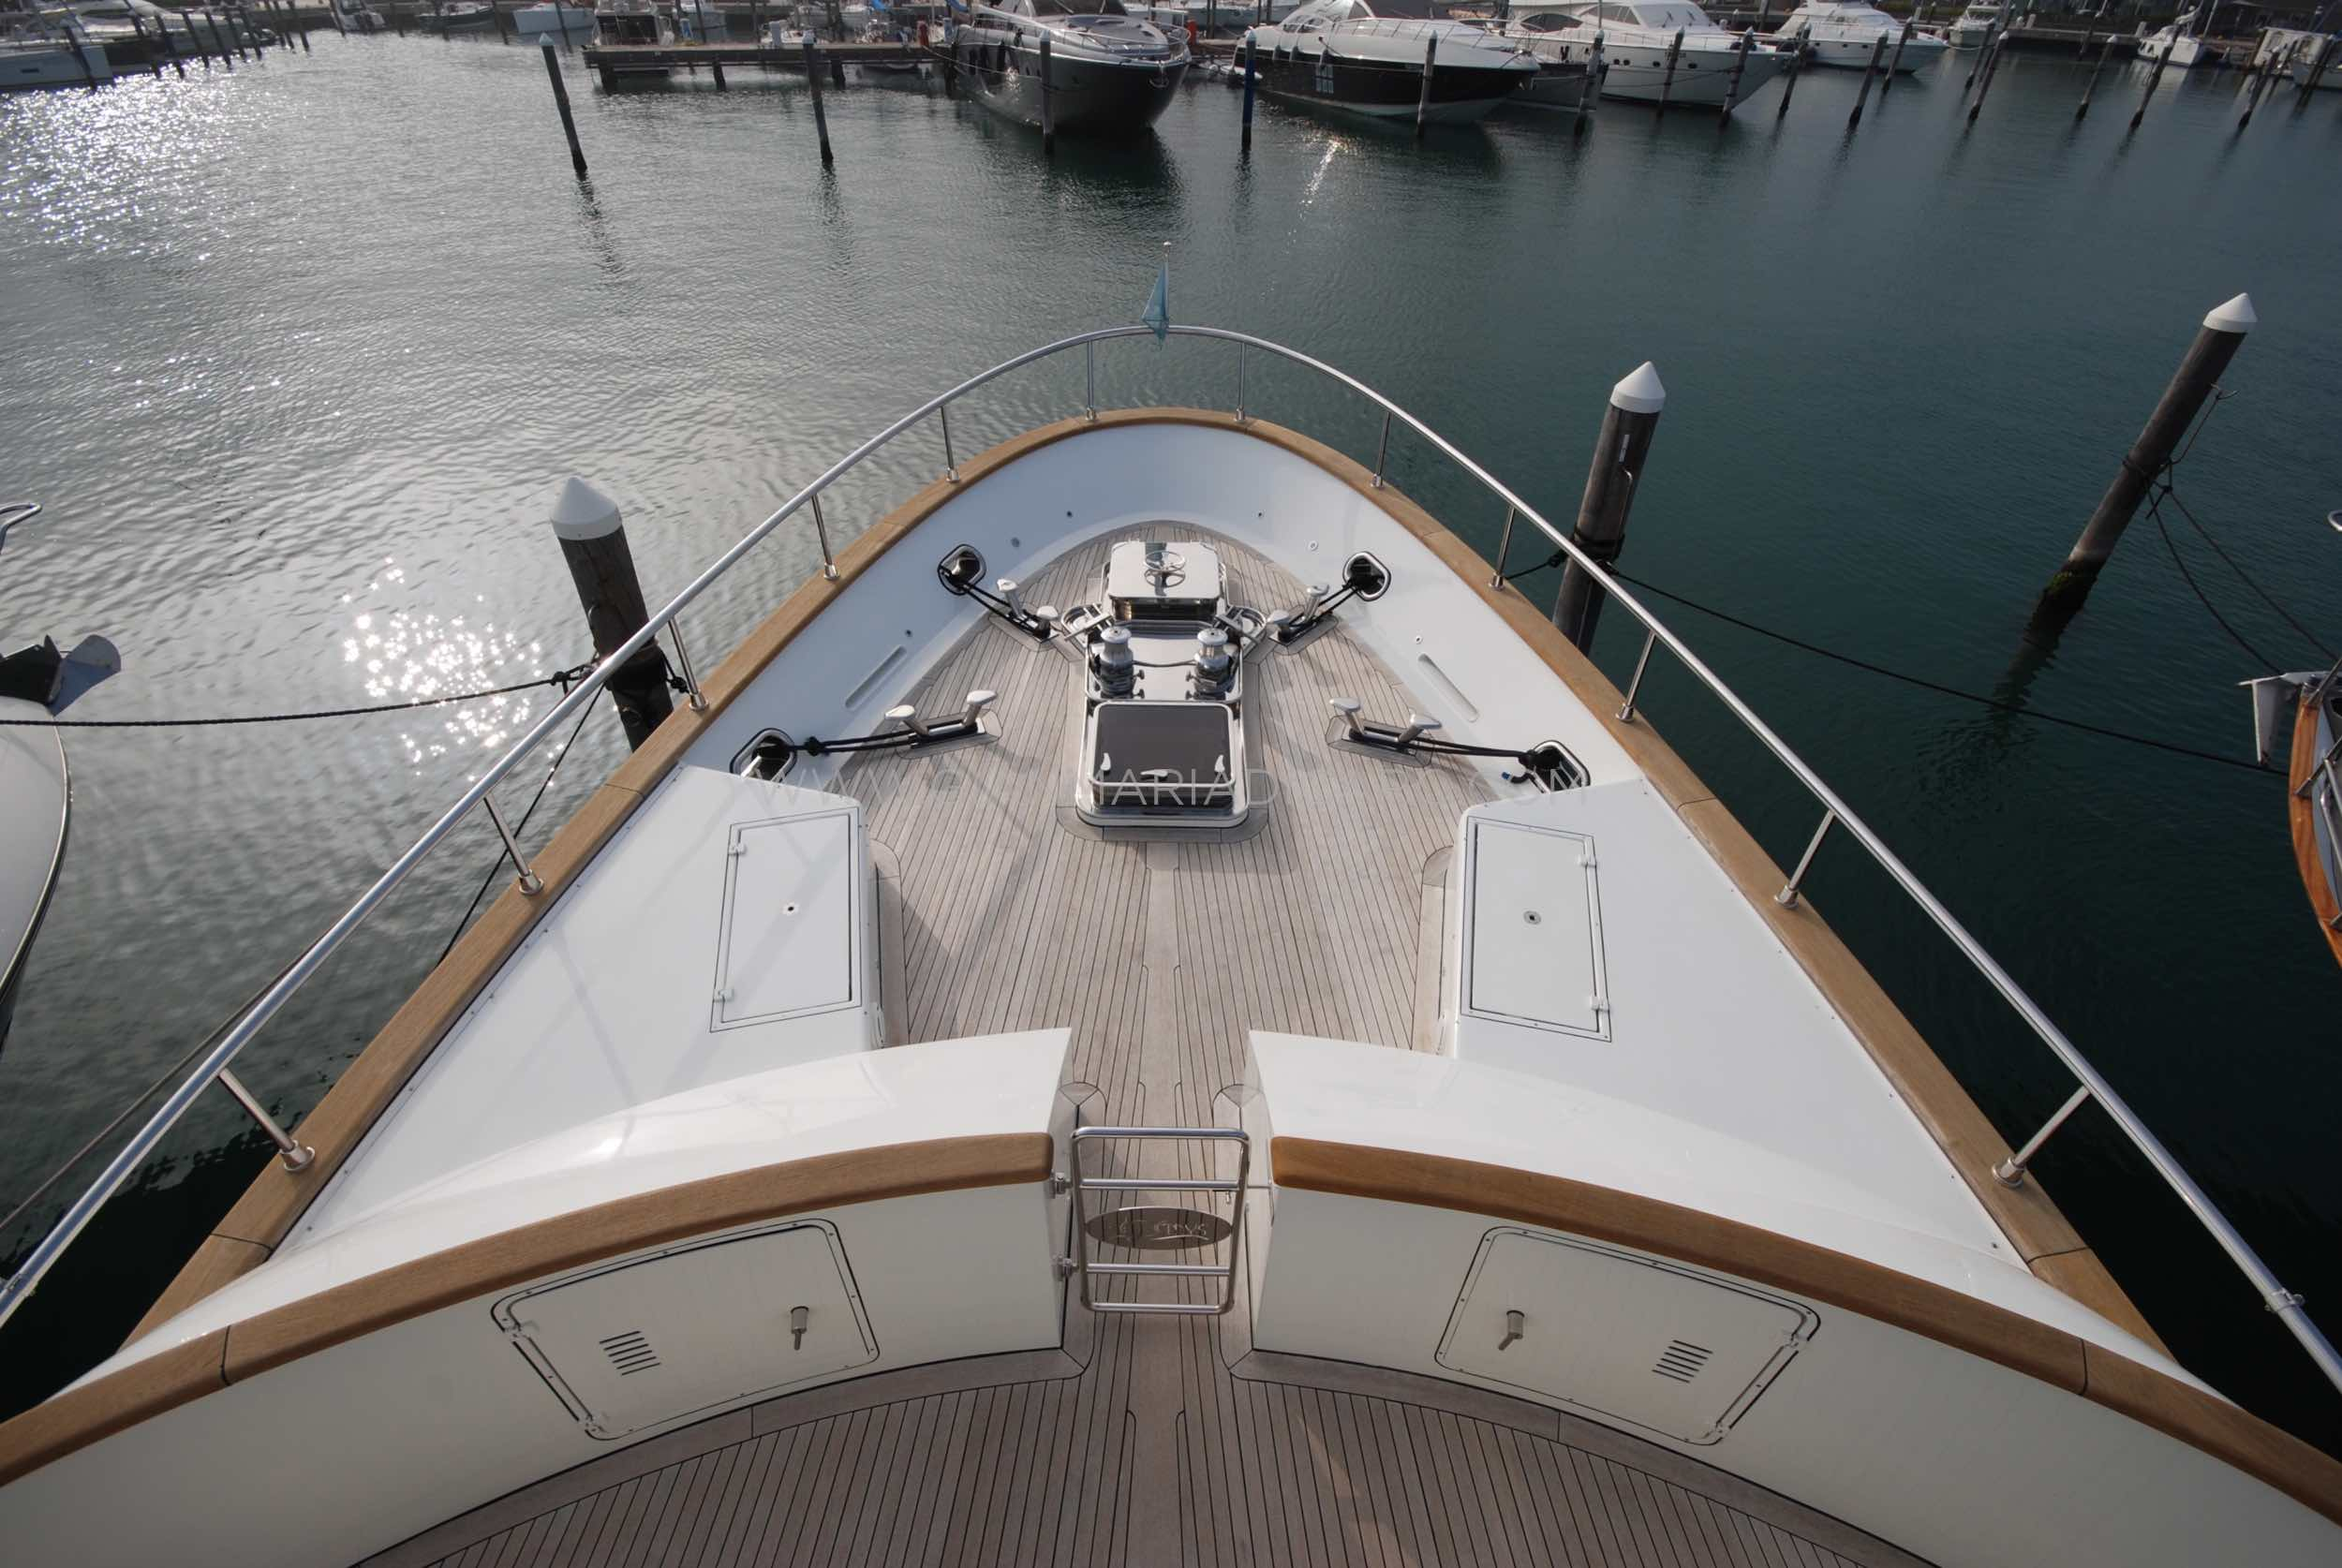 emys-yacht-22-unica-for-sale-4.jpg